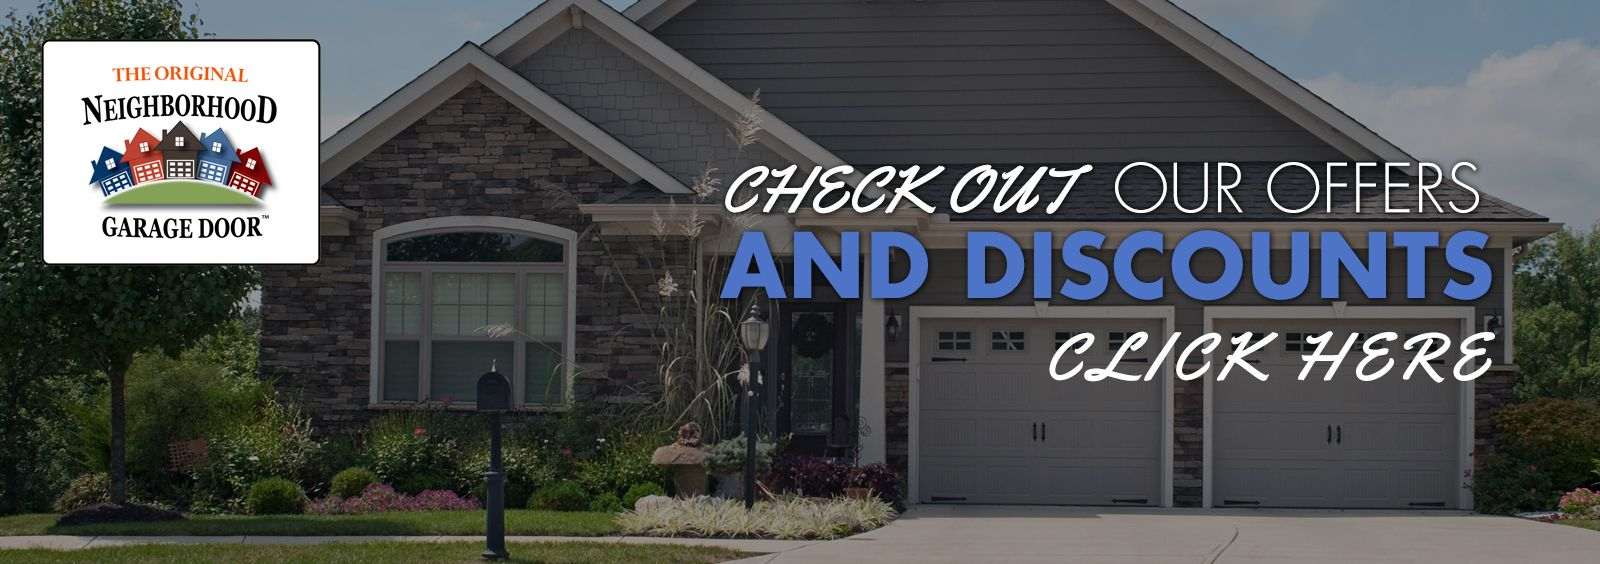 Holiday Garage Door Services And Installation In Charlotte Nc Http